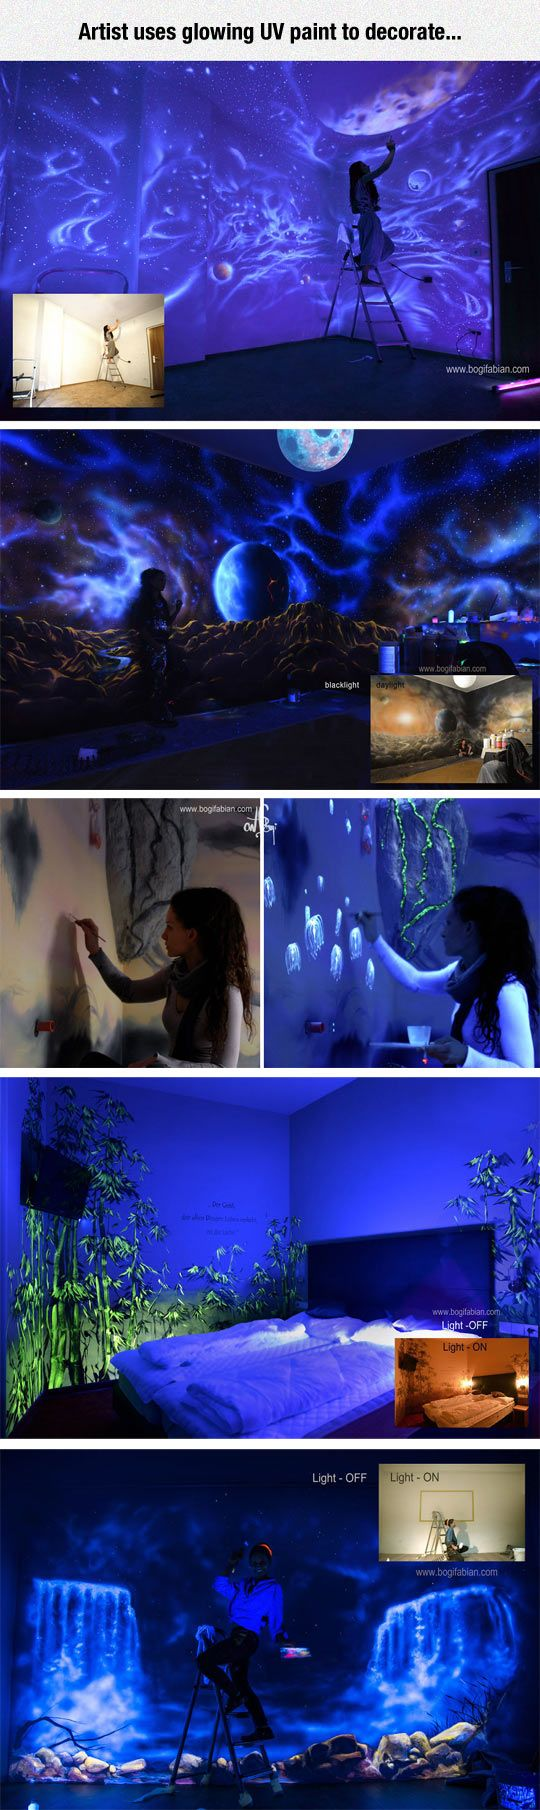 An Amazing Decoration With UV Glowing Paint In Your Home. |LOL, Damn! Funny and Awesome pictures.